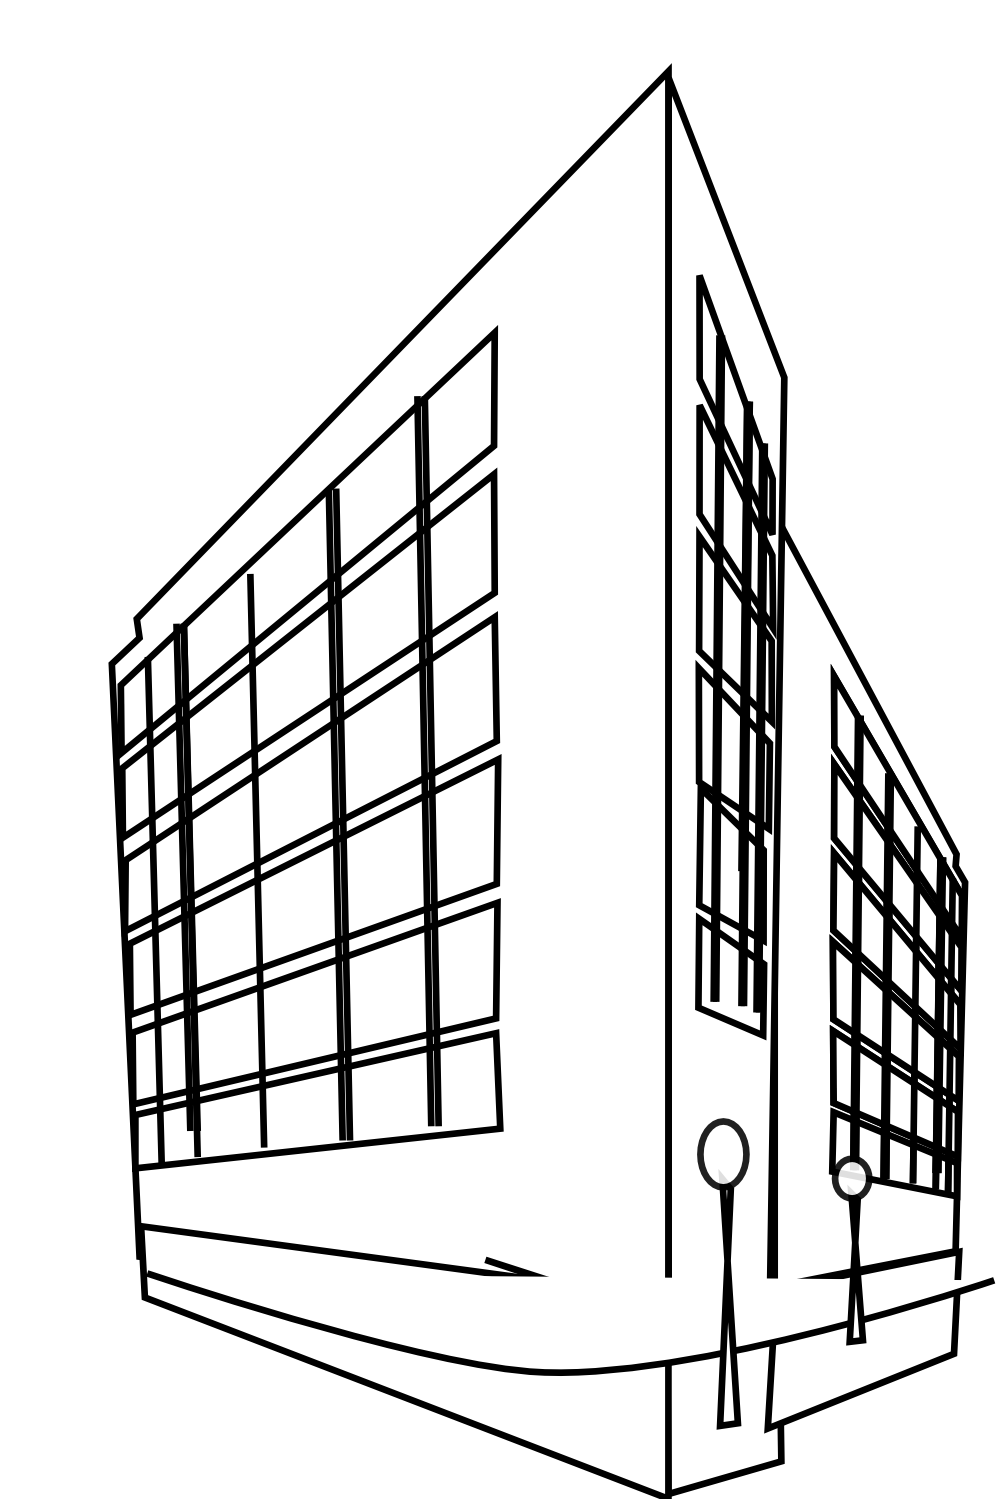 Building Clipart Black And White Commercial Building Black White